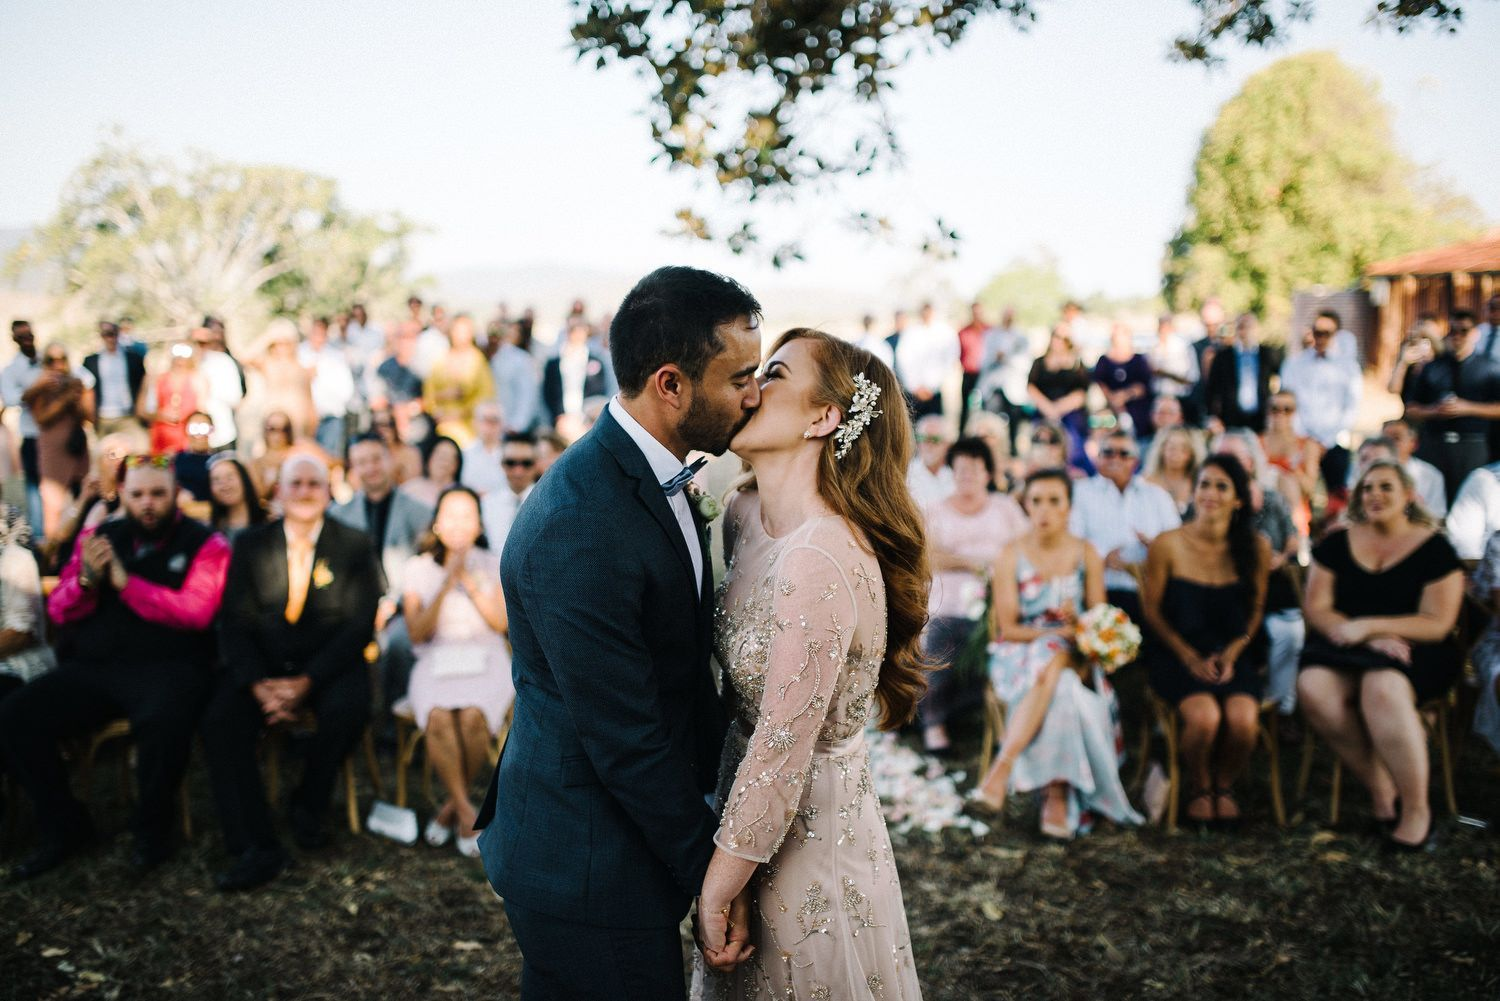 Rustic country wedding with all of the romantic and vintage vibes